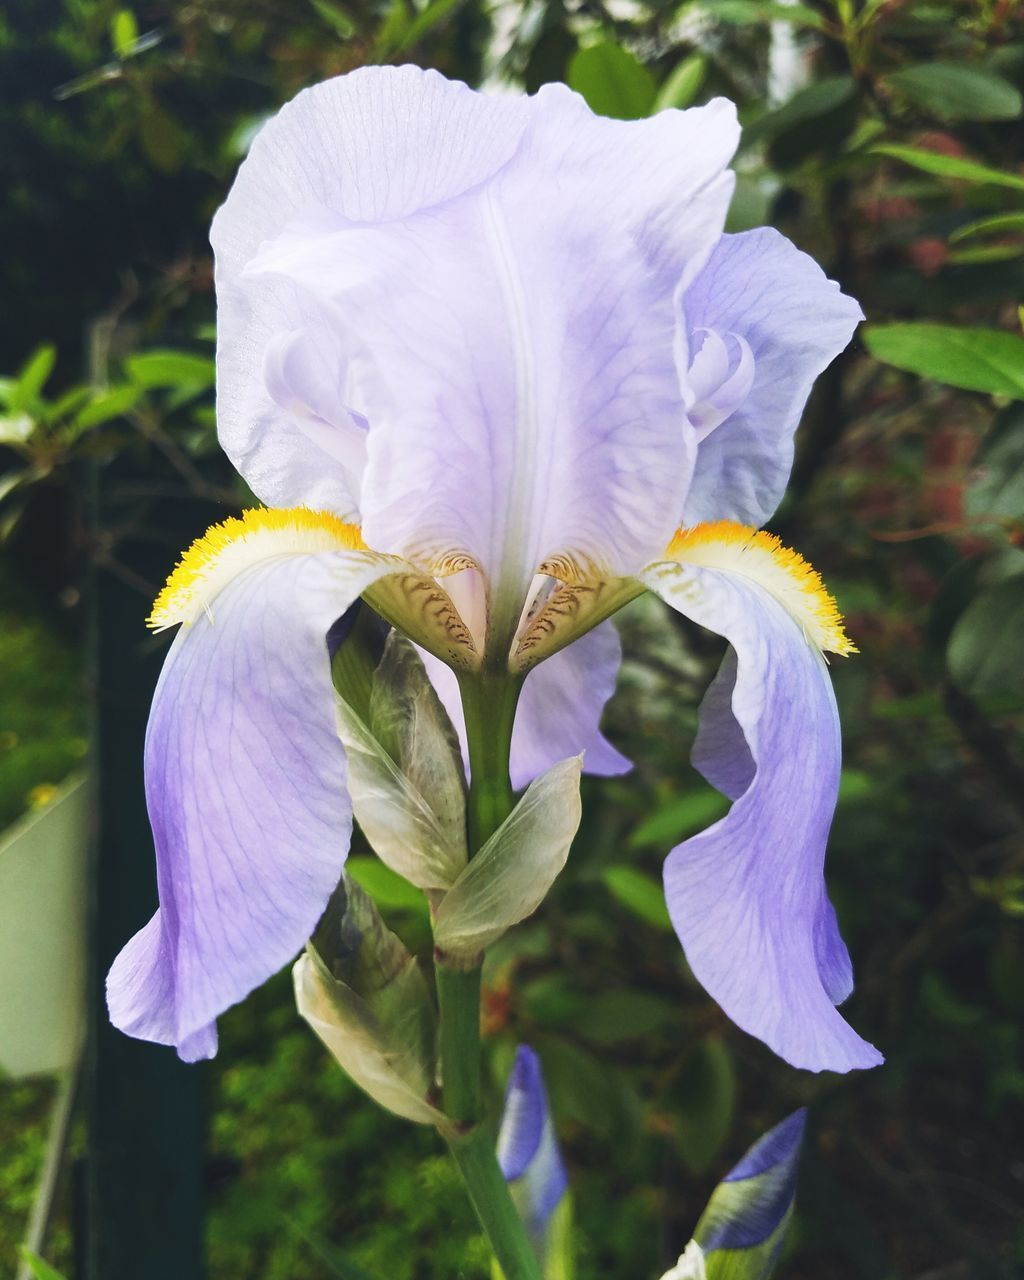 flowering plant, flower, petal, fragility, vulnerability, beauty in nature, freshness, plant, close-up, inflorescence, flower head, growth, iris - plant, purple, nature, focus on foreground, iris, day, no people